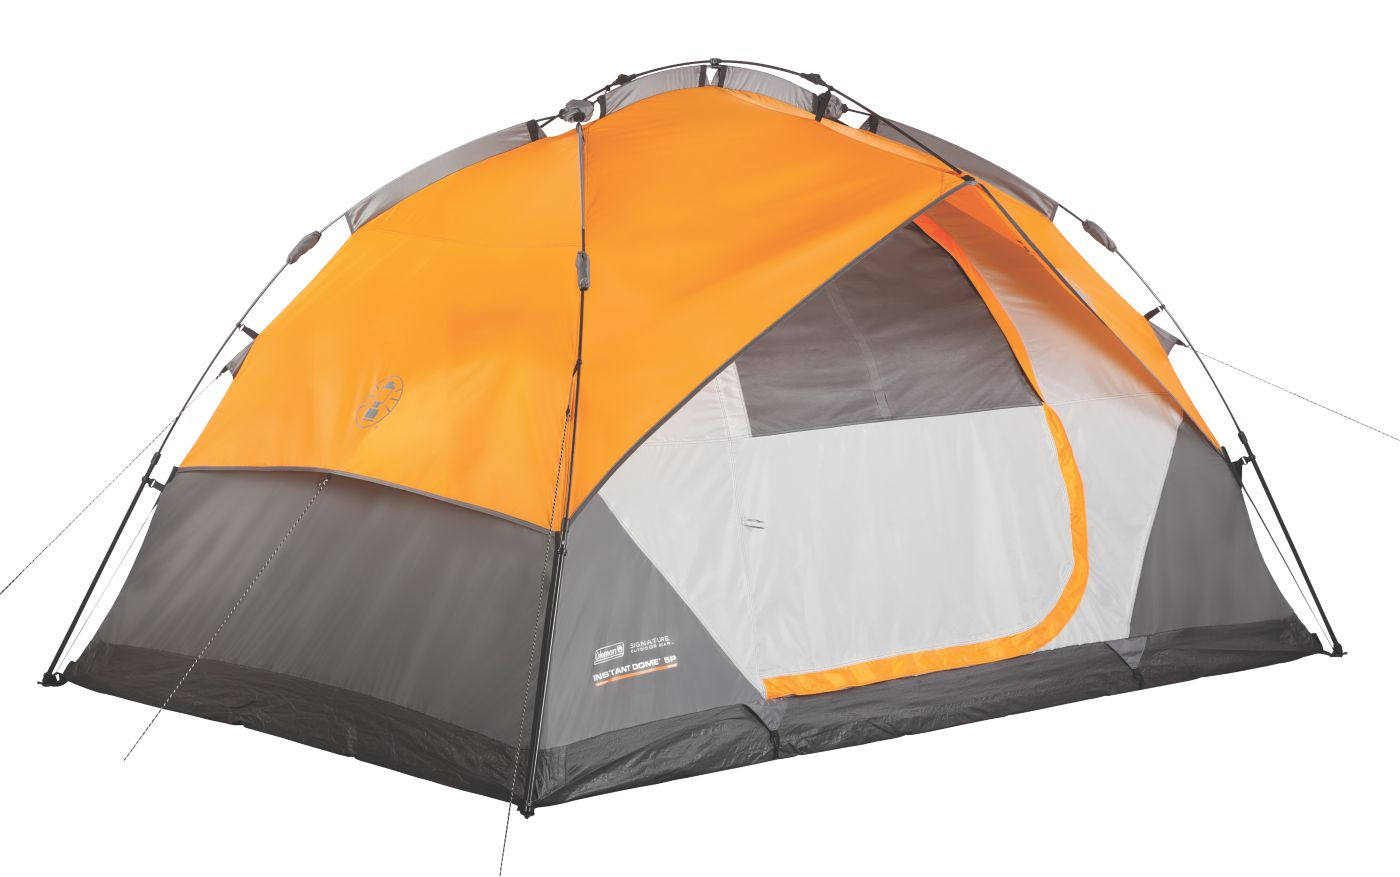 ... 5-Person Instant Dome Tent image 1 ...  sc 1 st  Coleman & 5-Person Instant Dome Tent | Coleman